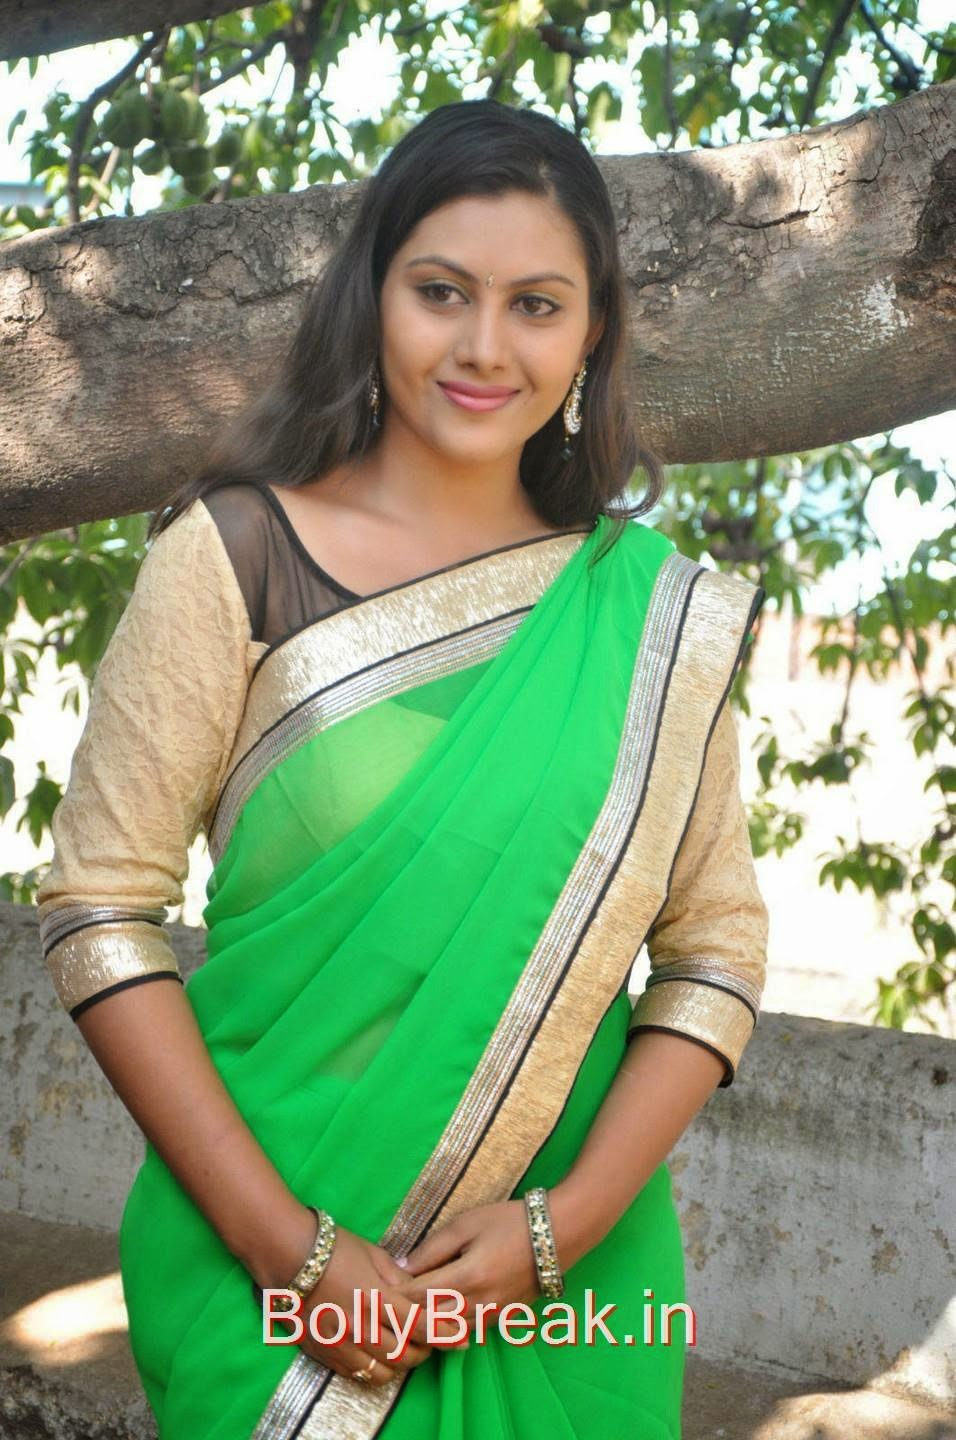 Priyanka Stills, Hot Pics Of Priyanka In Green Saree from SS Art Productions Production No 1 Movie